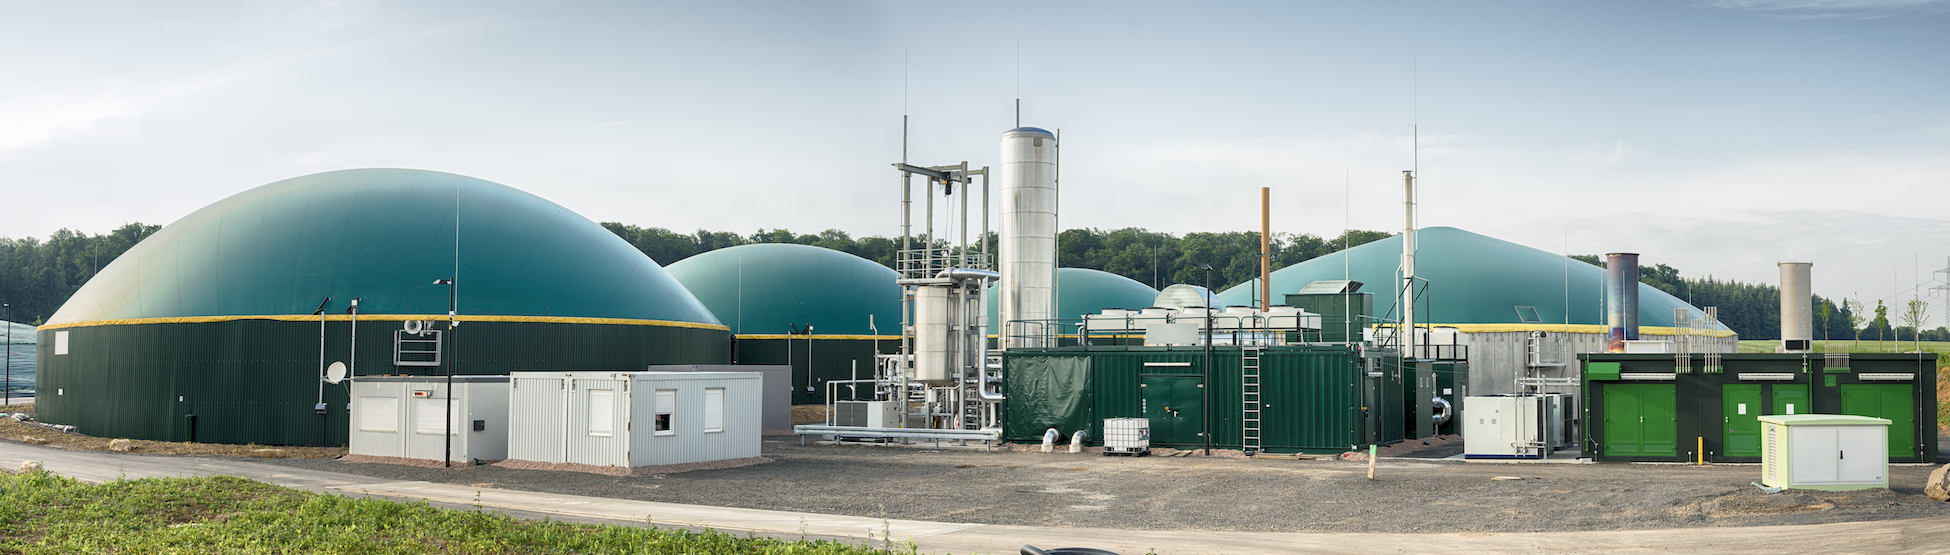 Panoramashot of a biogas plant in a rural landscape